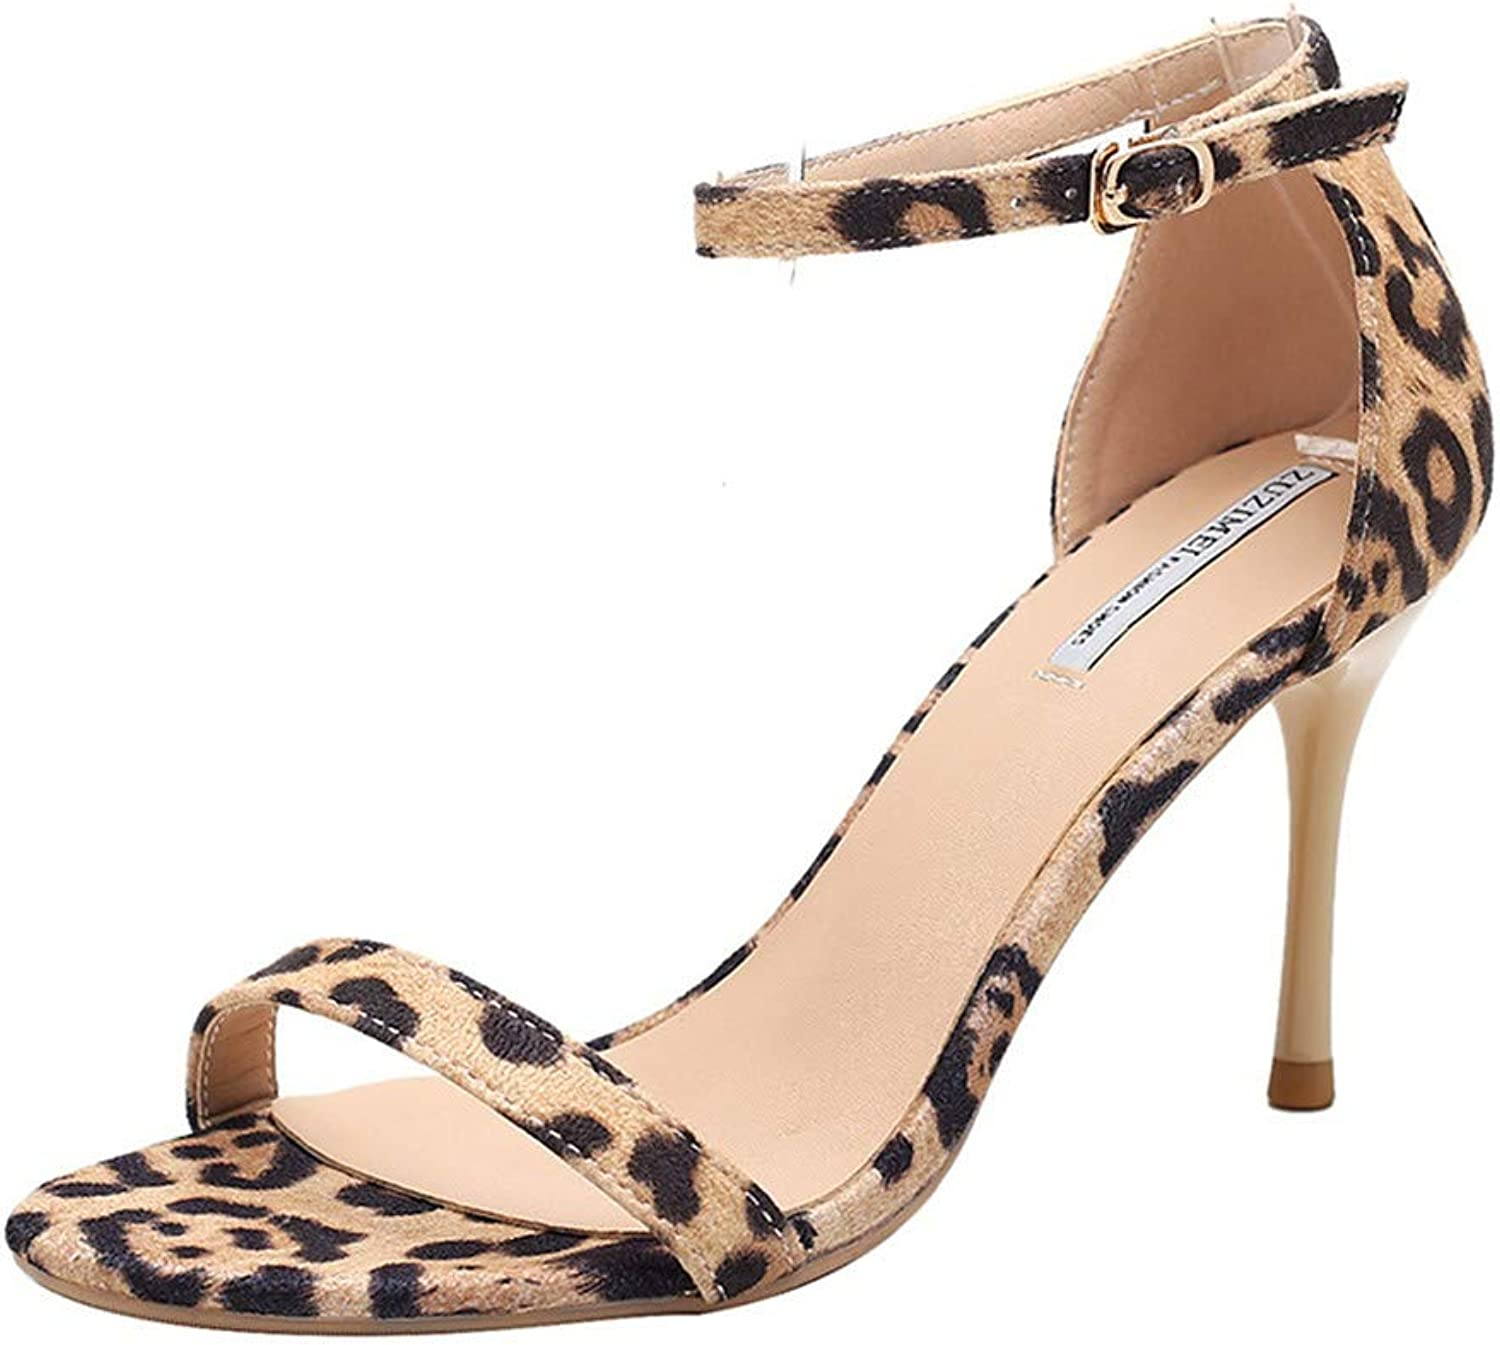 Top Shishang Apricot high Heel Sandals Female Stiletto Open Toe Summer high Heels Leopard Print Buckle